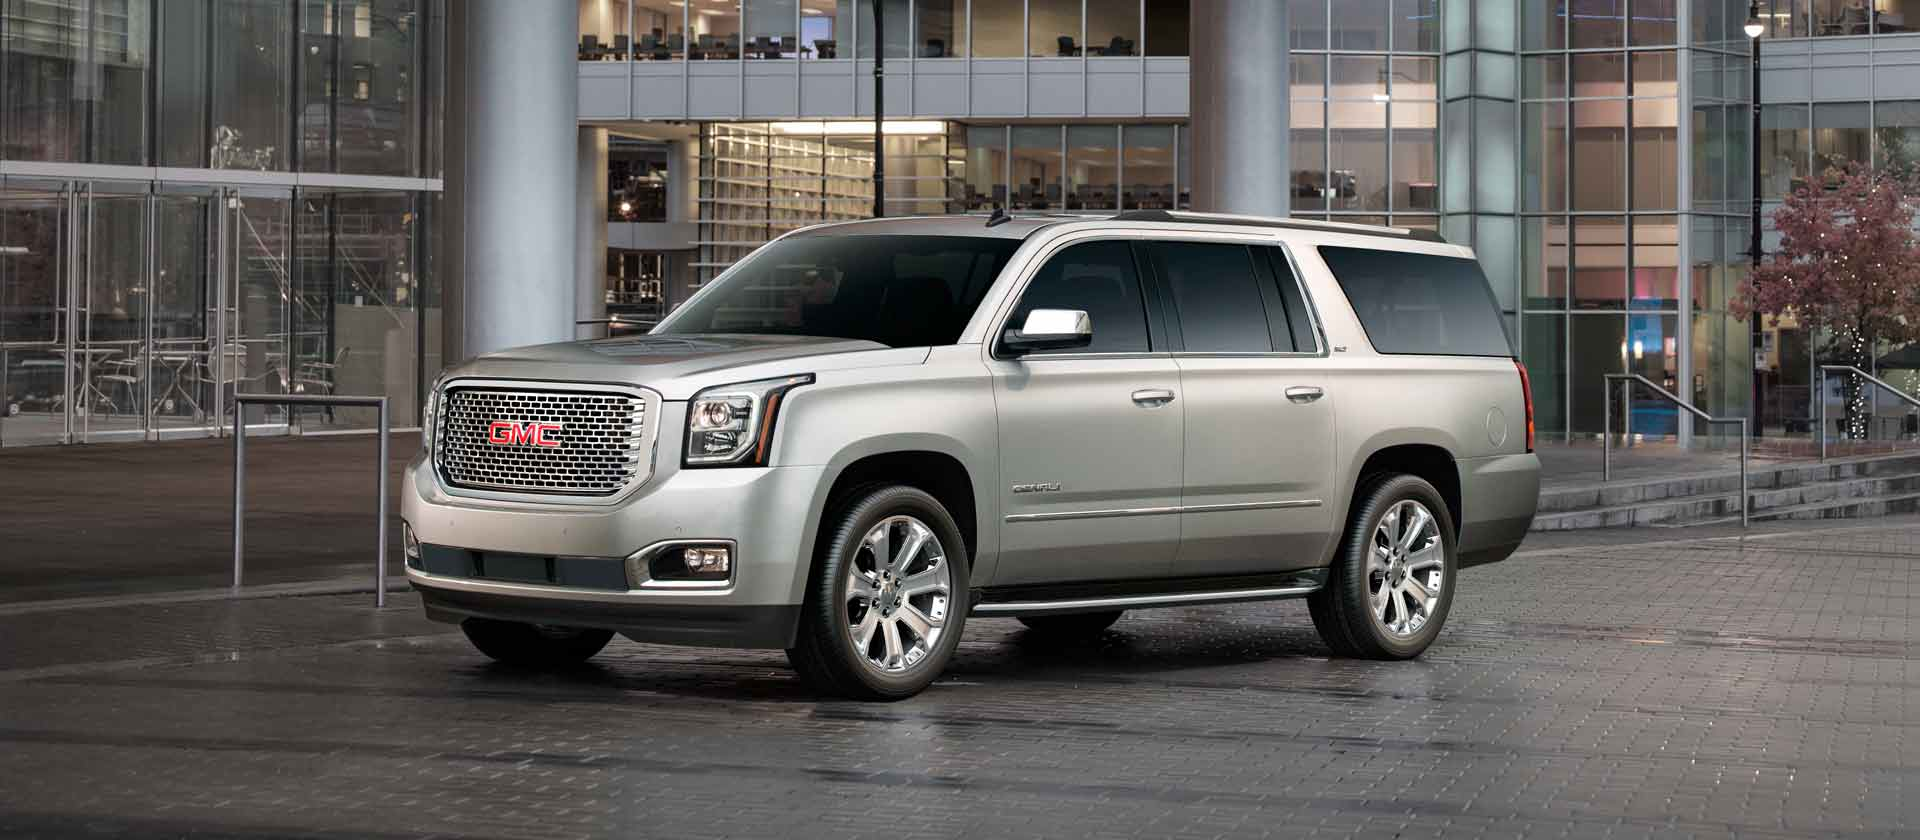 2015 GMC Yukon XL photo - 2